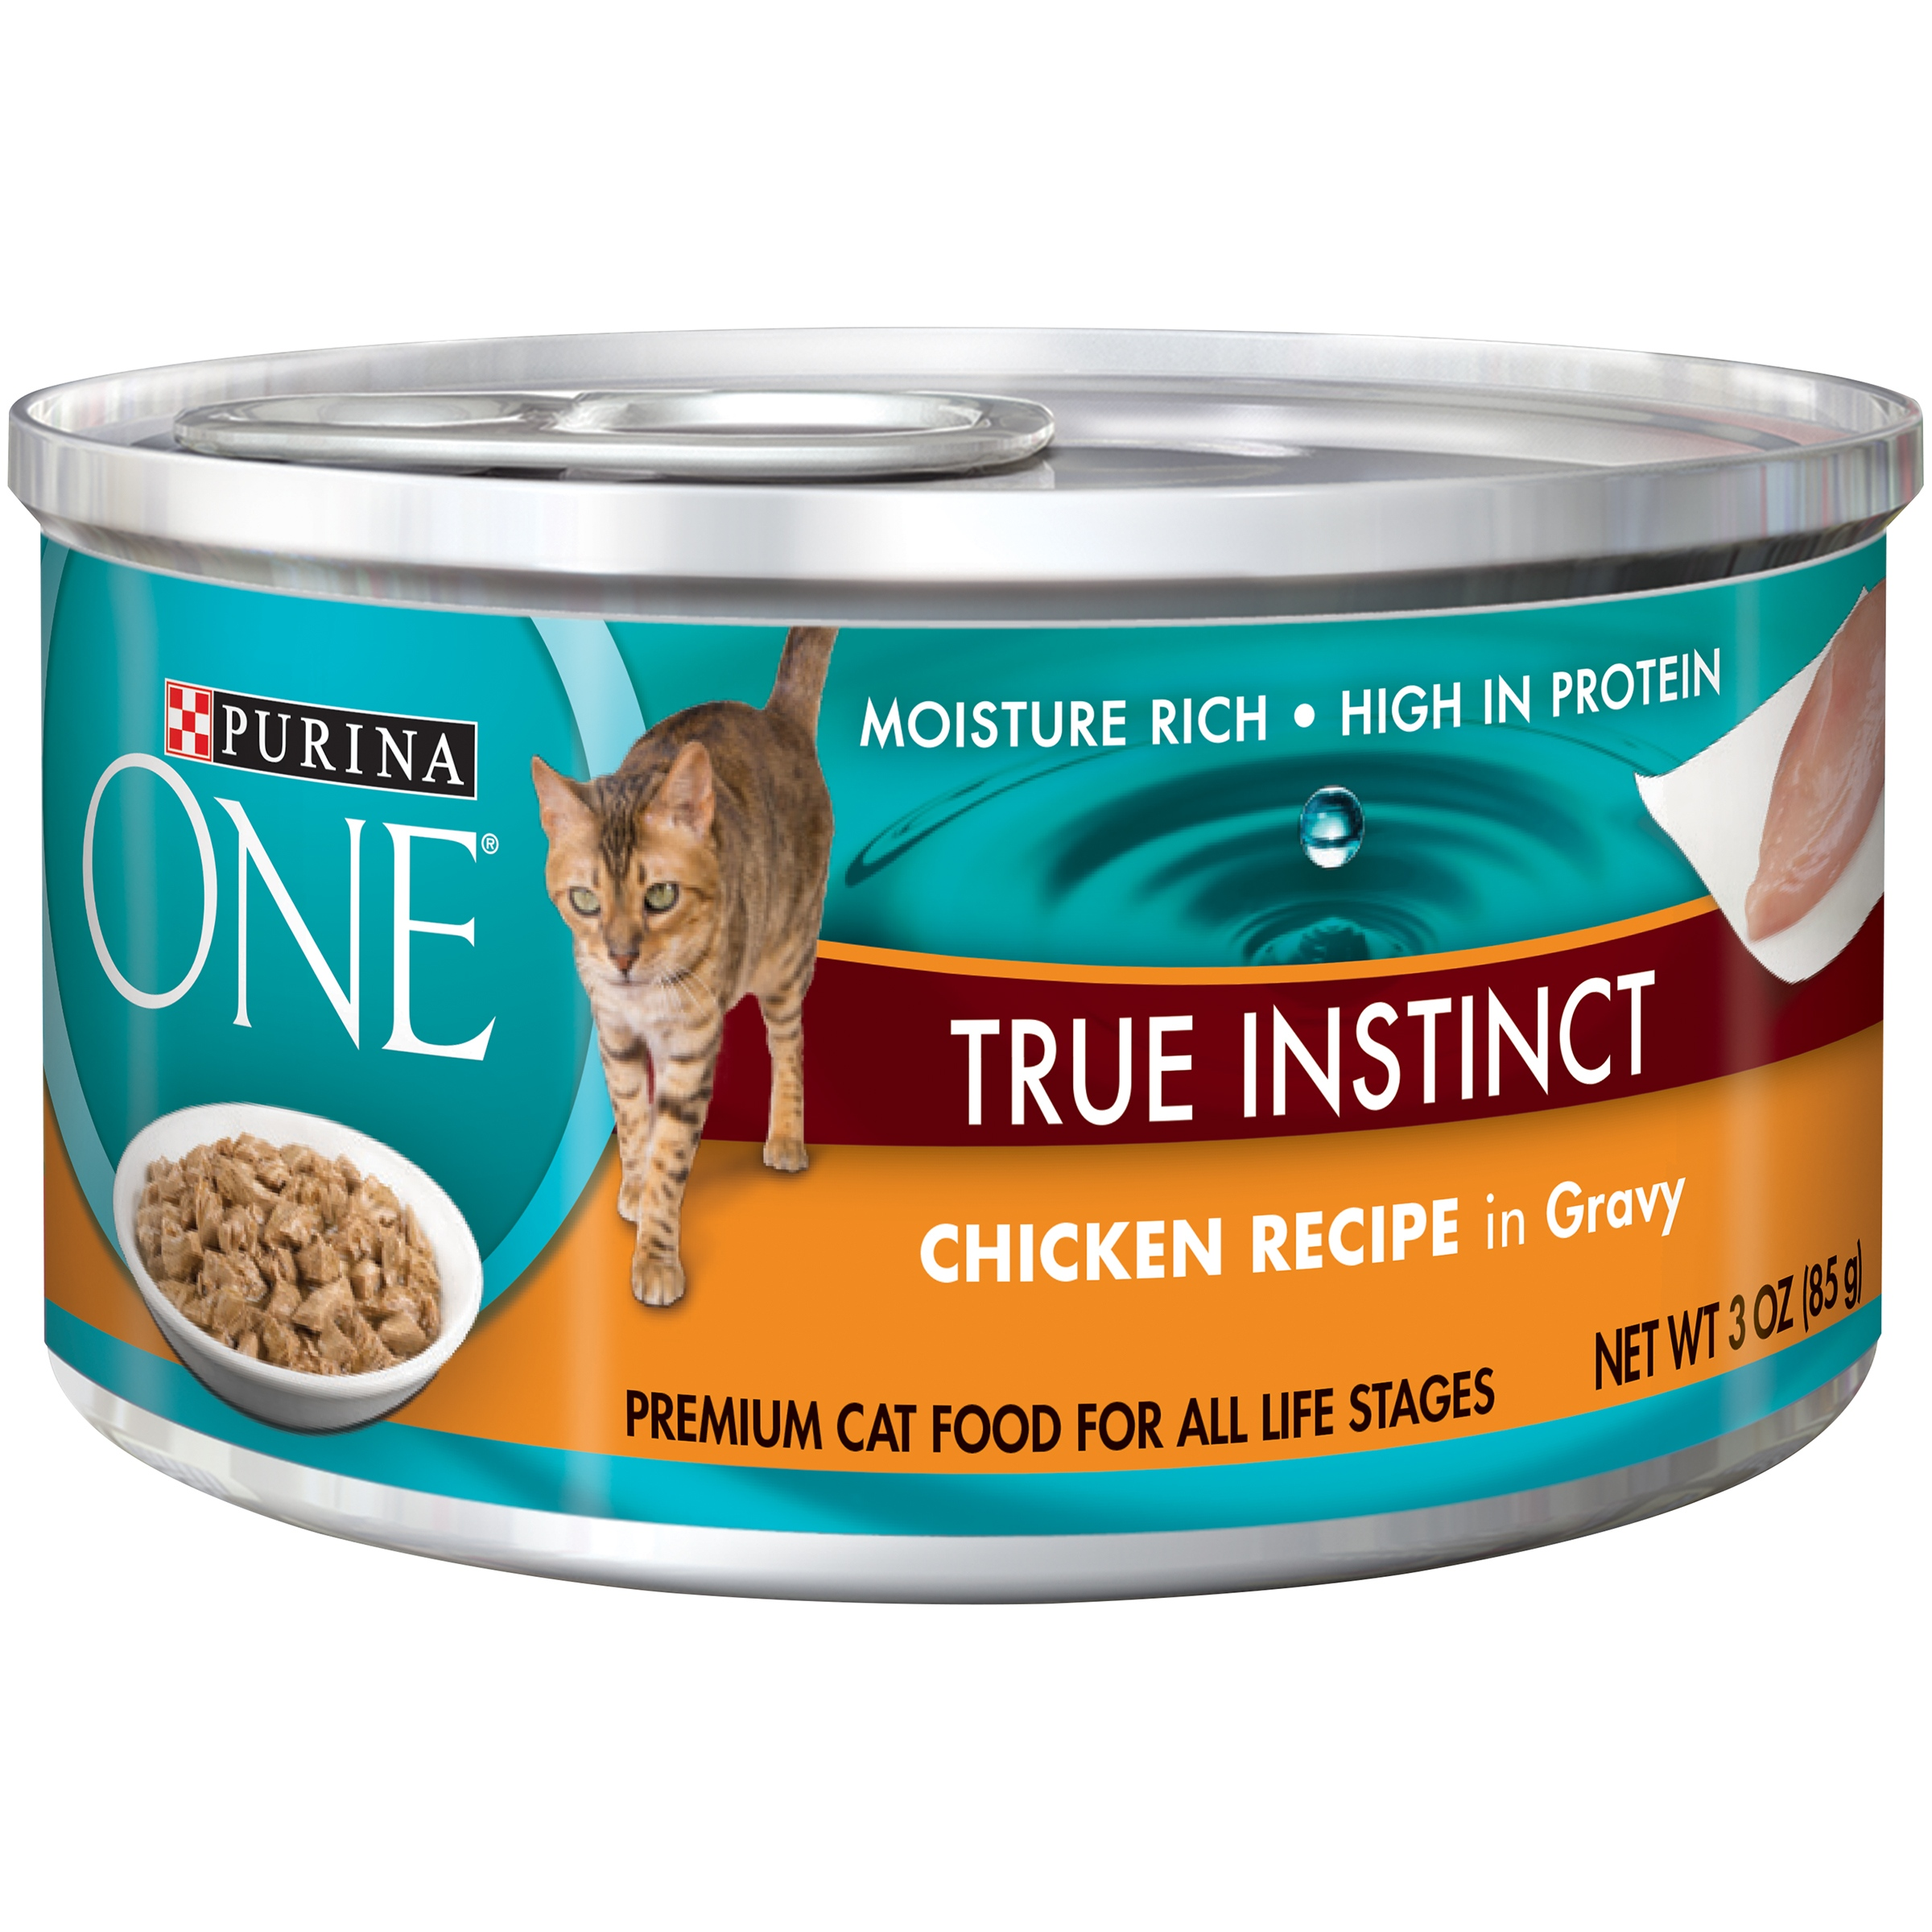 These dry and wet food recipes are inspired by nature and advanced by science to give your cat a complete and balanced meal with real meat, fish or poultry as the number one ingredient. With a choice of proteins and selections for cats of every age, you'll find the perfect Purina One for your kitty/5(20).